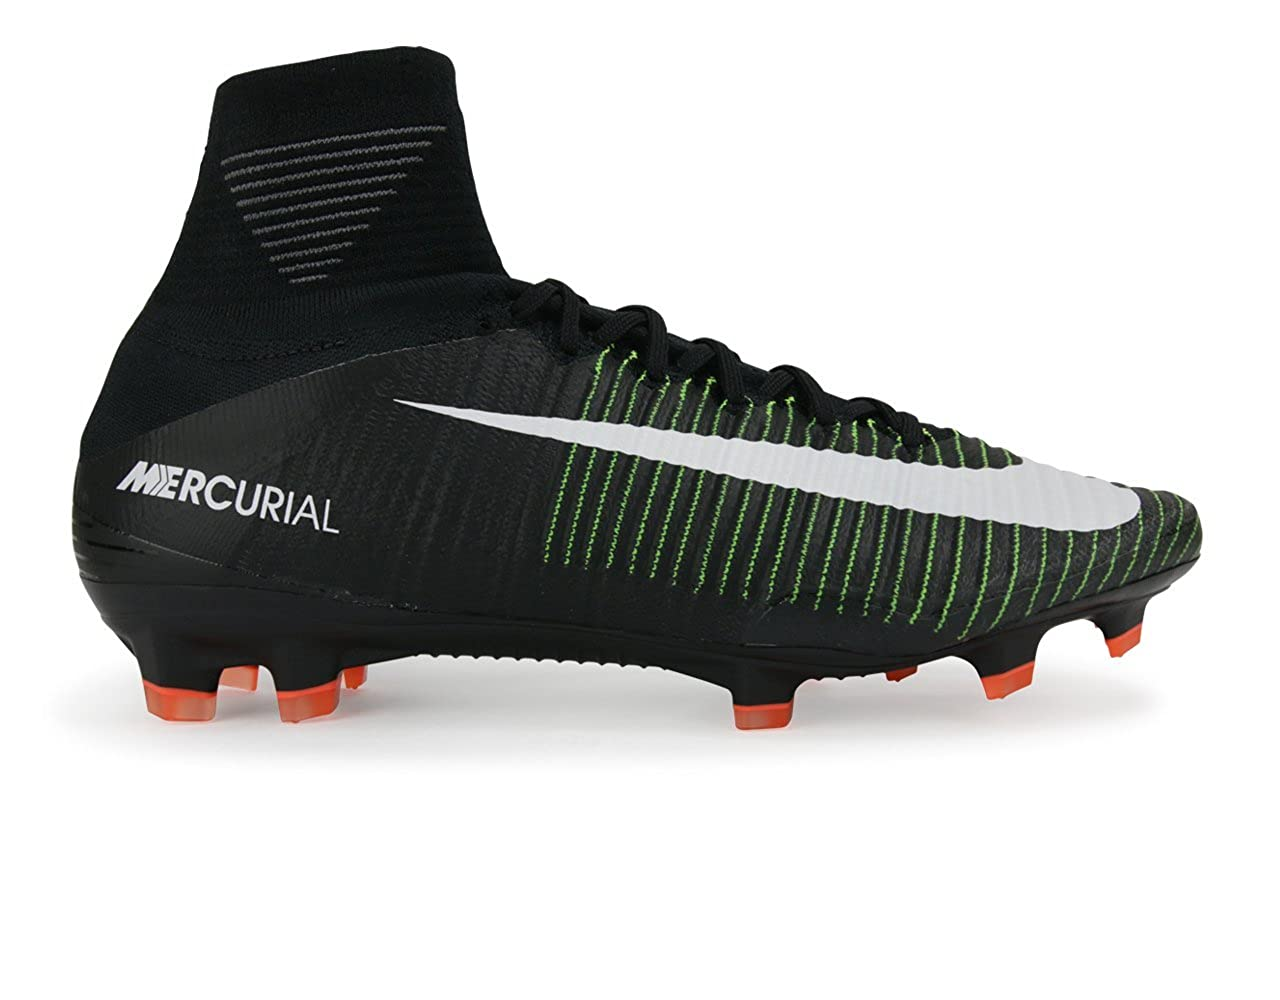 new product 8dd50 eef2c Amazon.com  Nike Mens Mercurial Superfly V FG BlackWhiteElectric Green  Soccer Shoes - 6.5A  Soccer